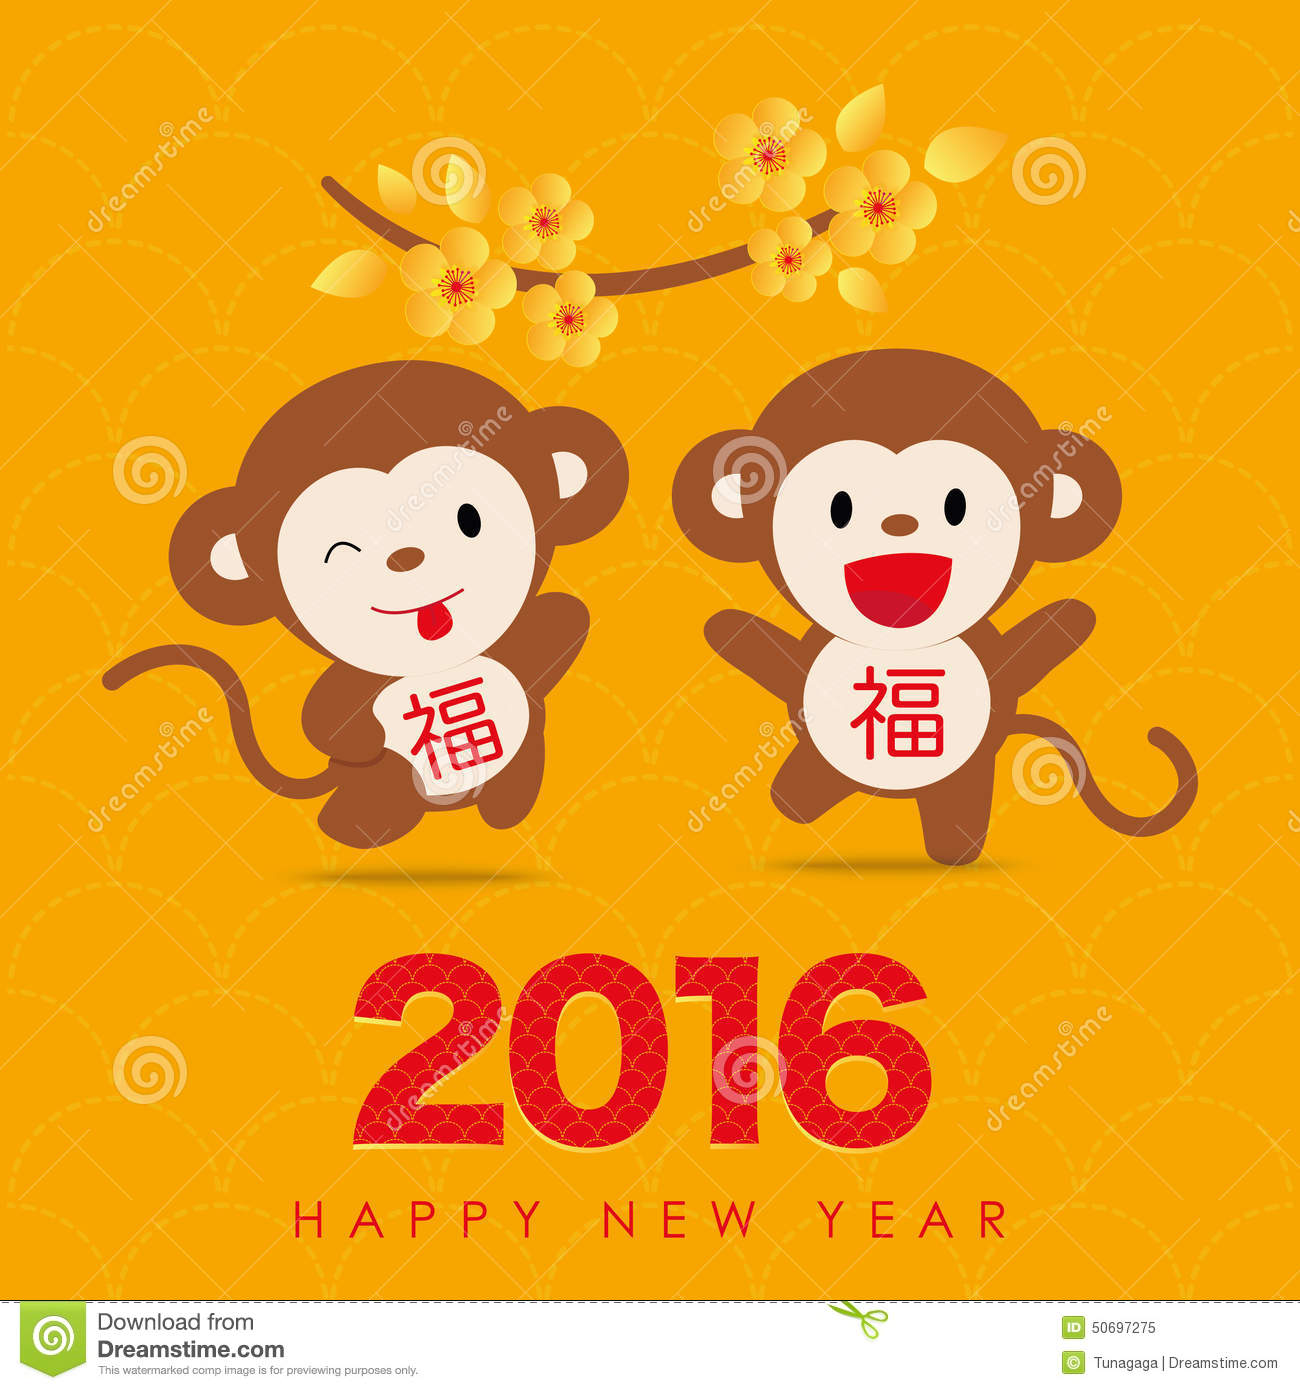 2016 happy chinese new year of monkey - Chinese New Year 2016 Animal